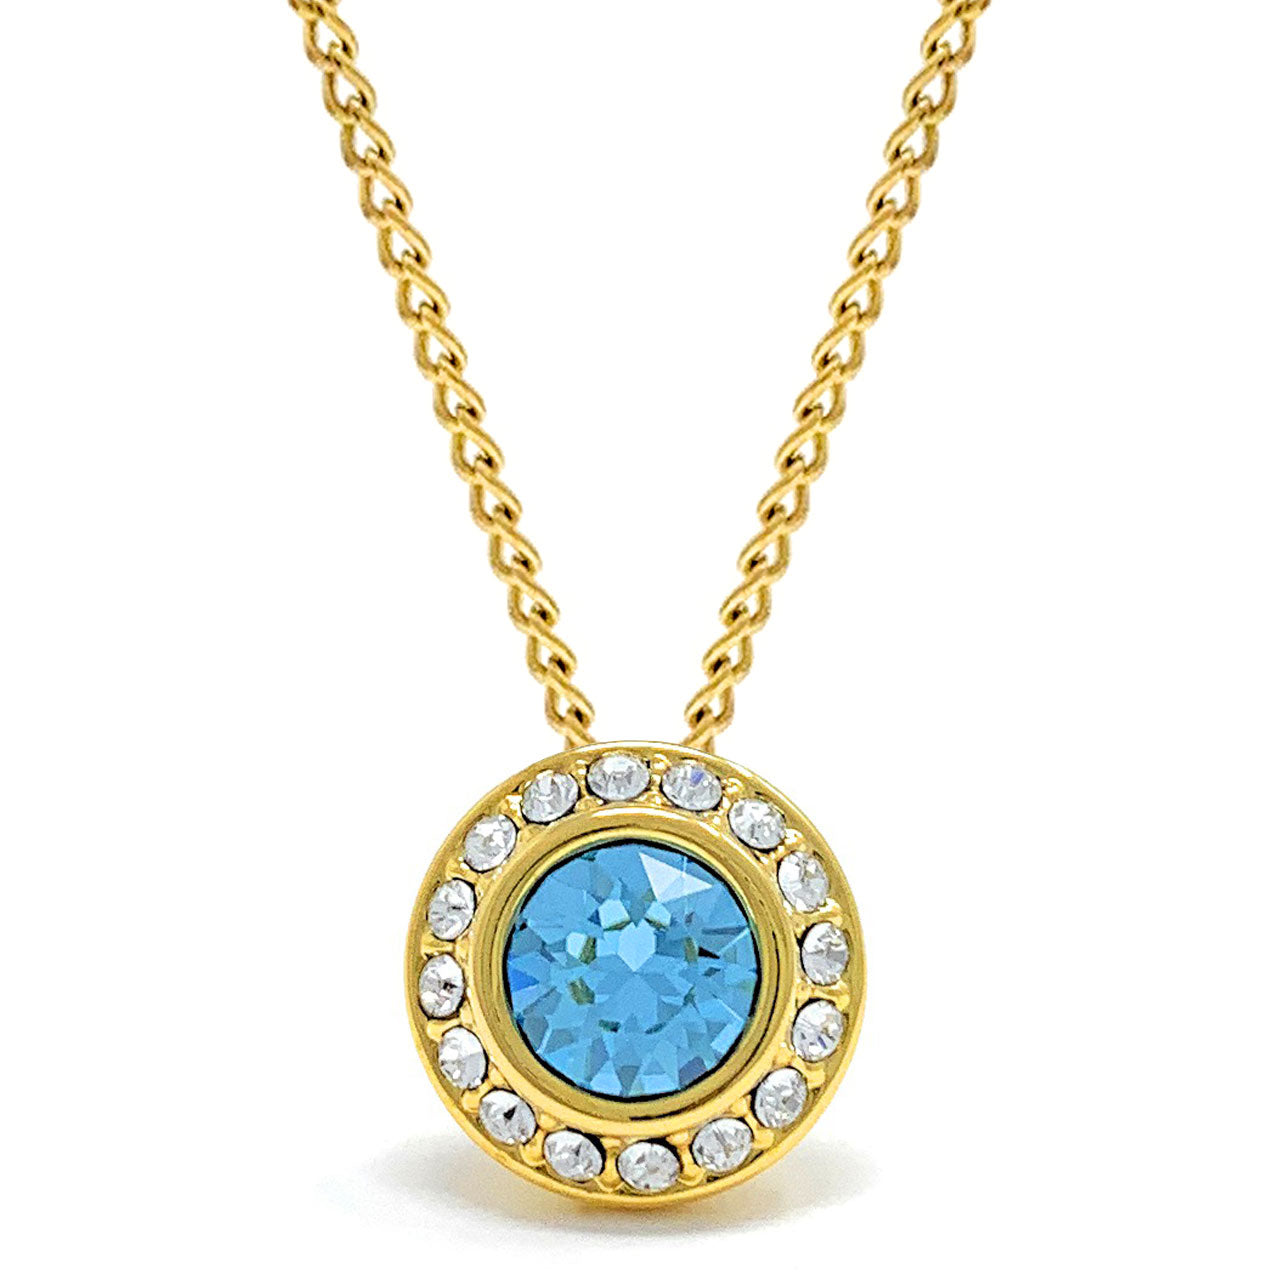 Halo Pave Pendant Necklace with Blue Aquamarine Round Crystals from Swarovski Gold Plated - Ed Heart